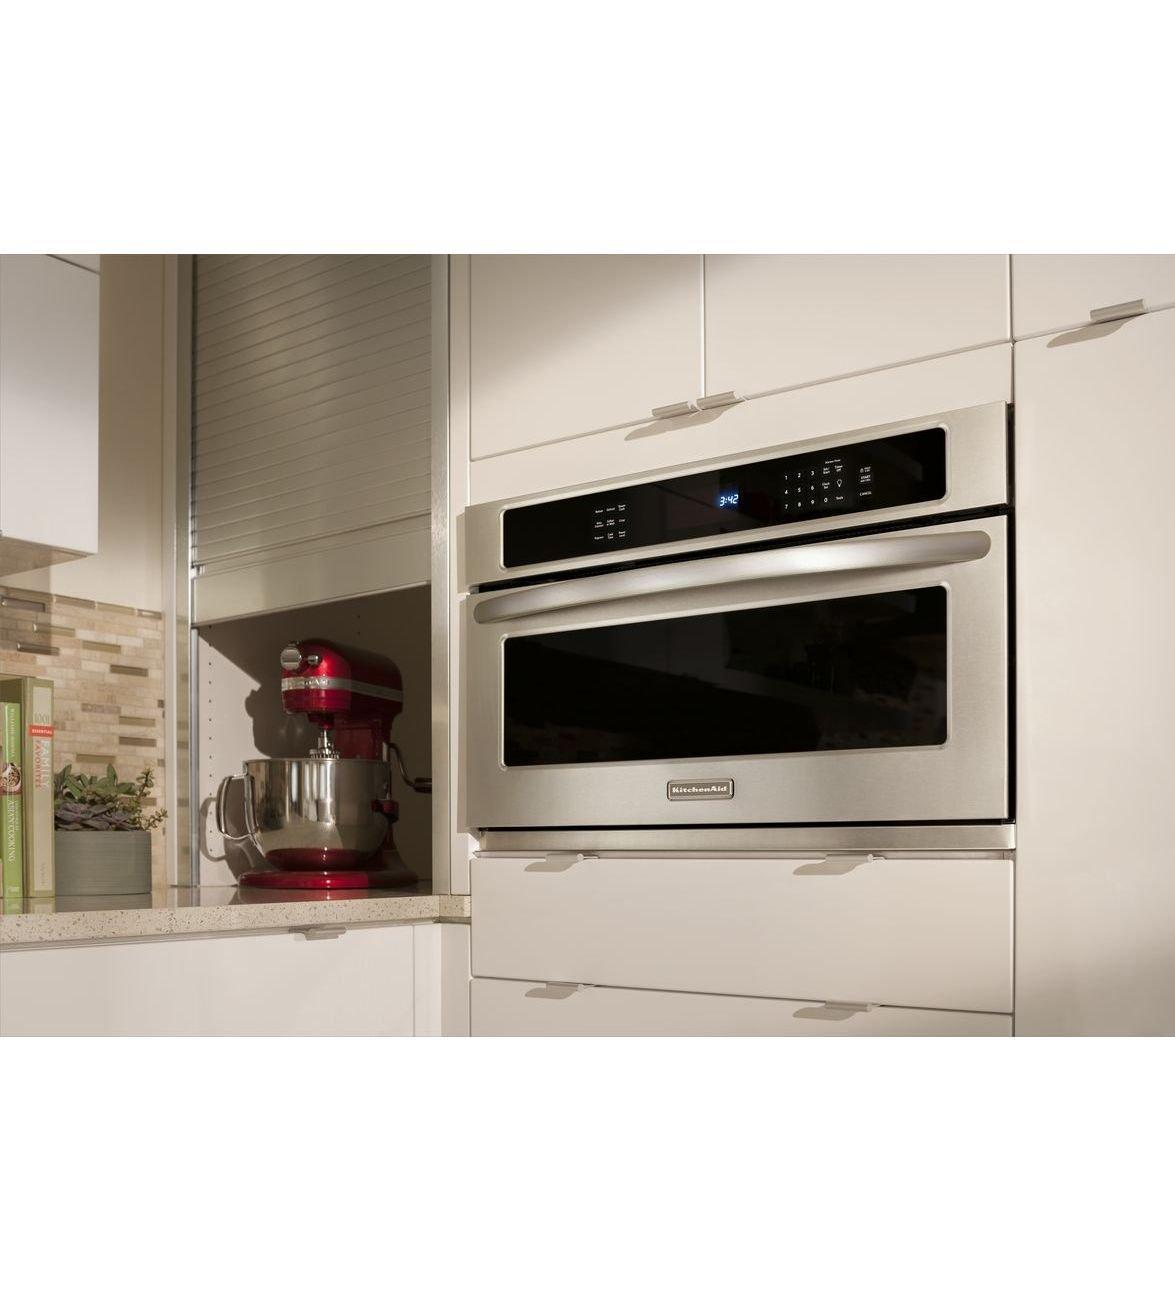 Kbhs109bss kitchenaid kbhs109bss architect series ii - Kitchenaid microwave ...